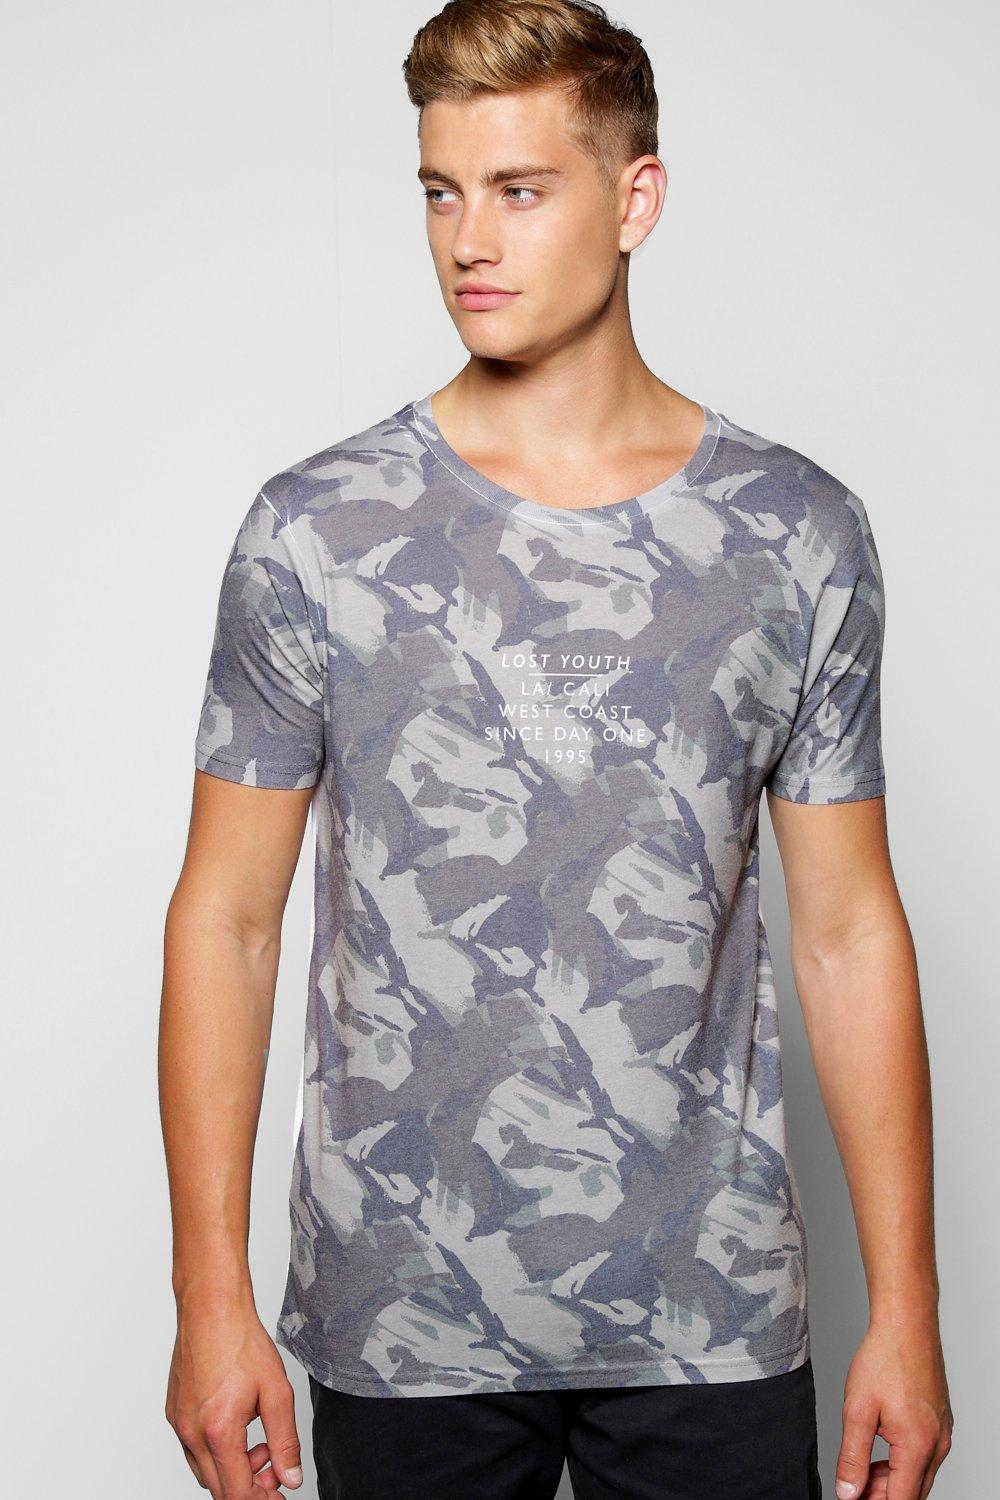 Camo Sublimation T Shirt